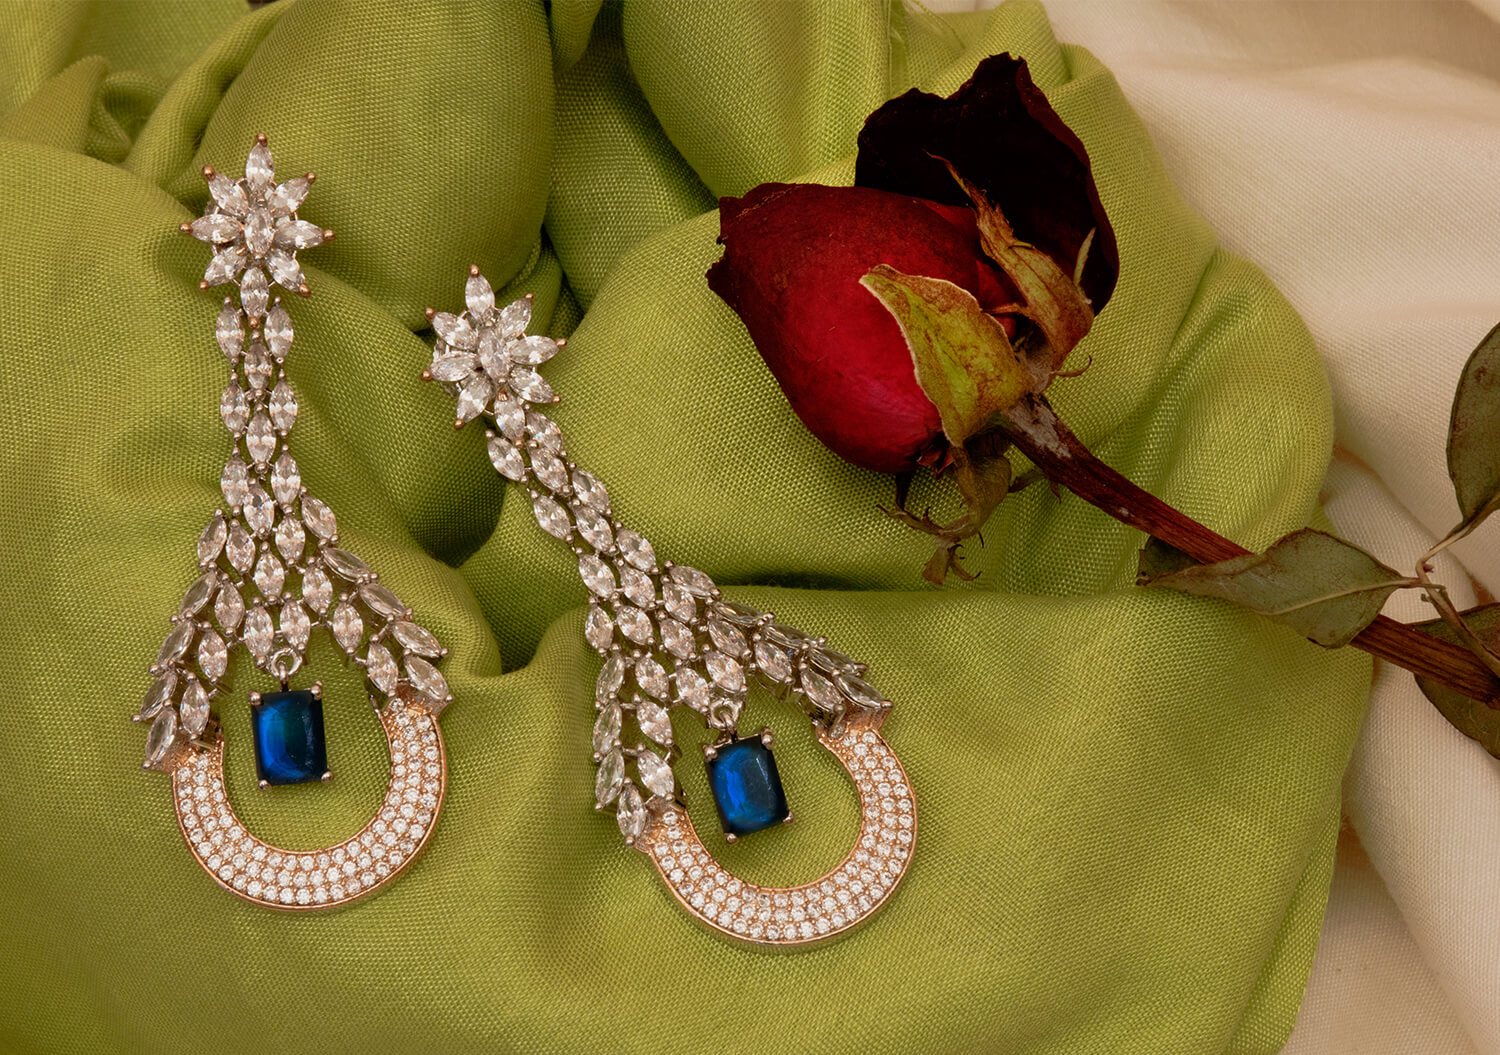 The Difference Between Fashion Jewellery vs Fine Jewellery